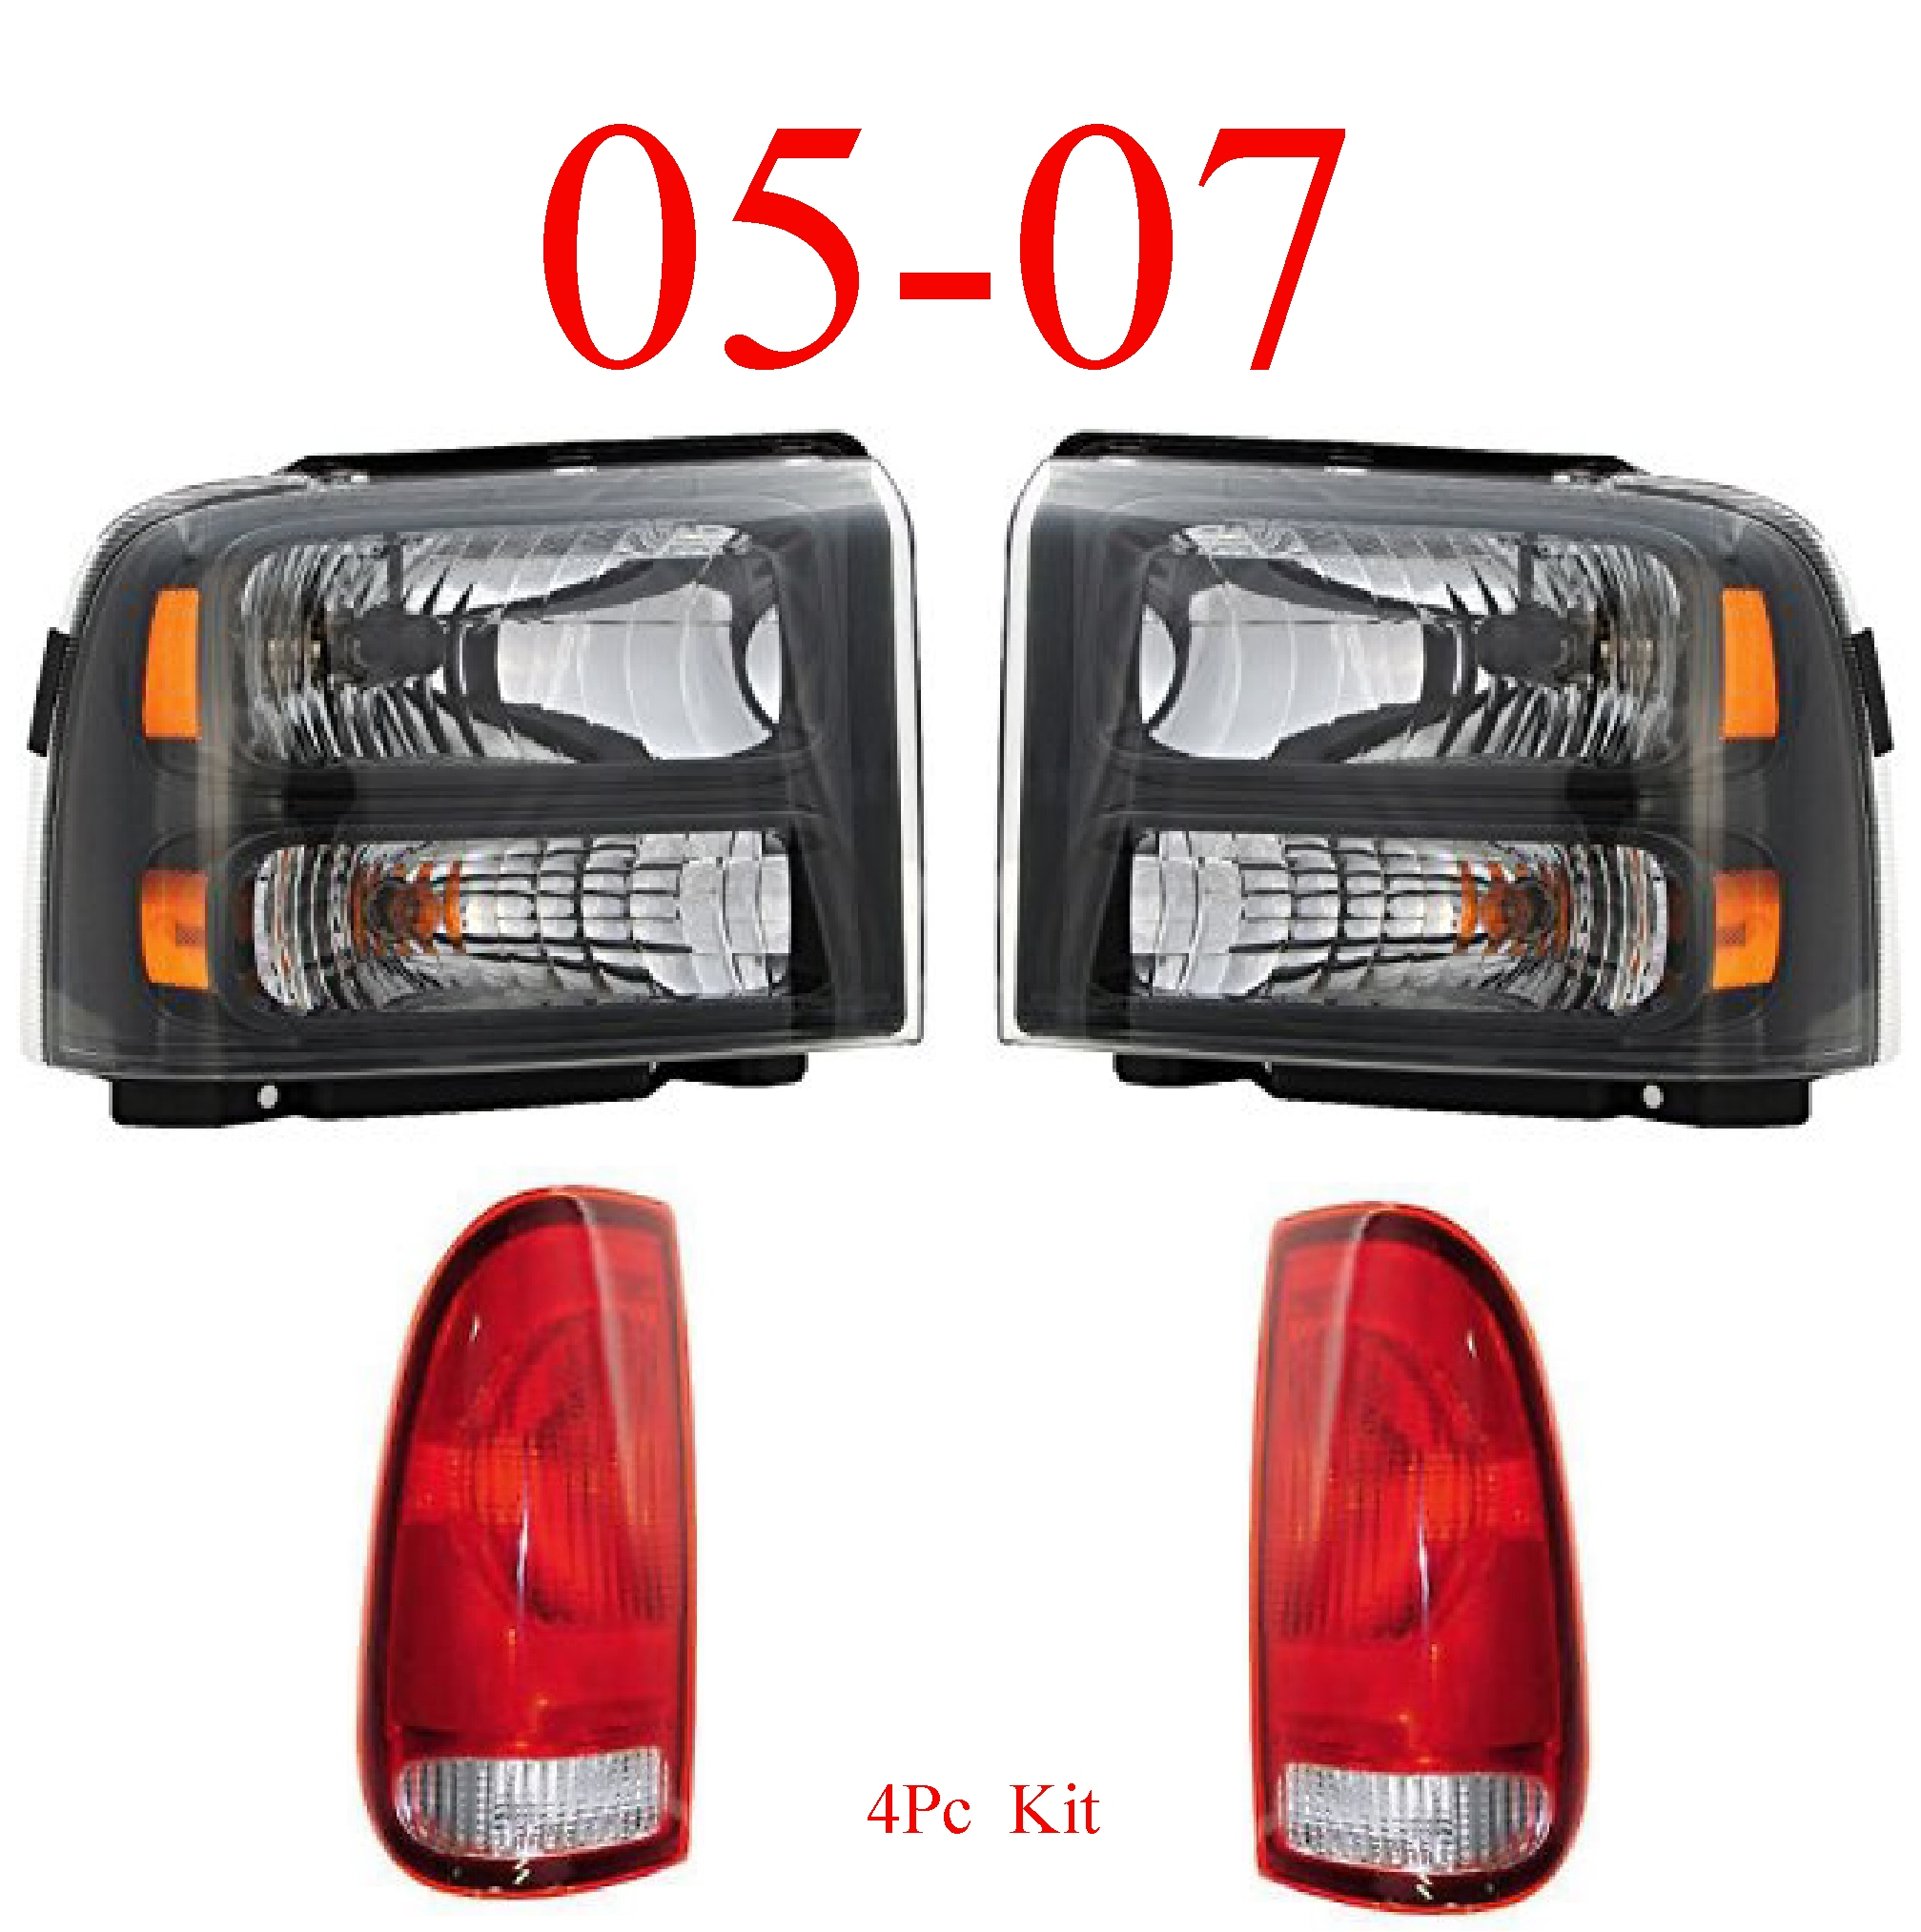 05-07 Ford Super Duty 4Pc Head & Tail Light Kit Harley Davidson